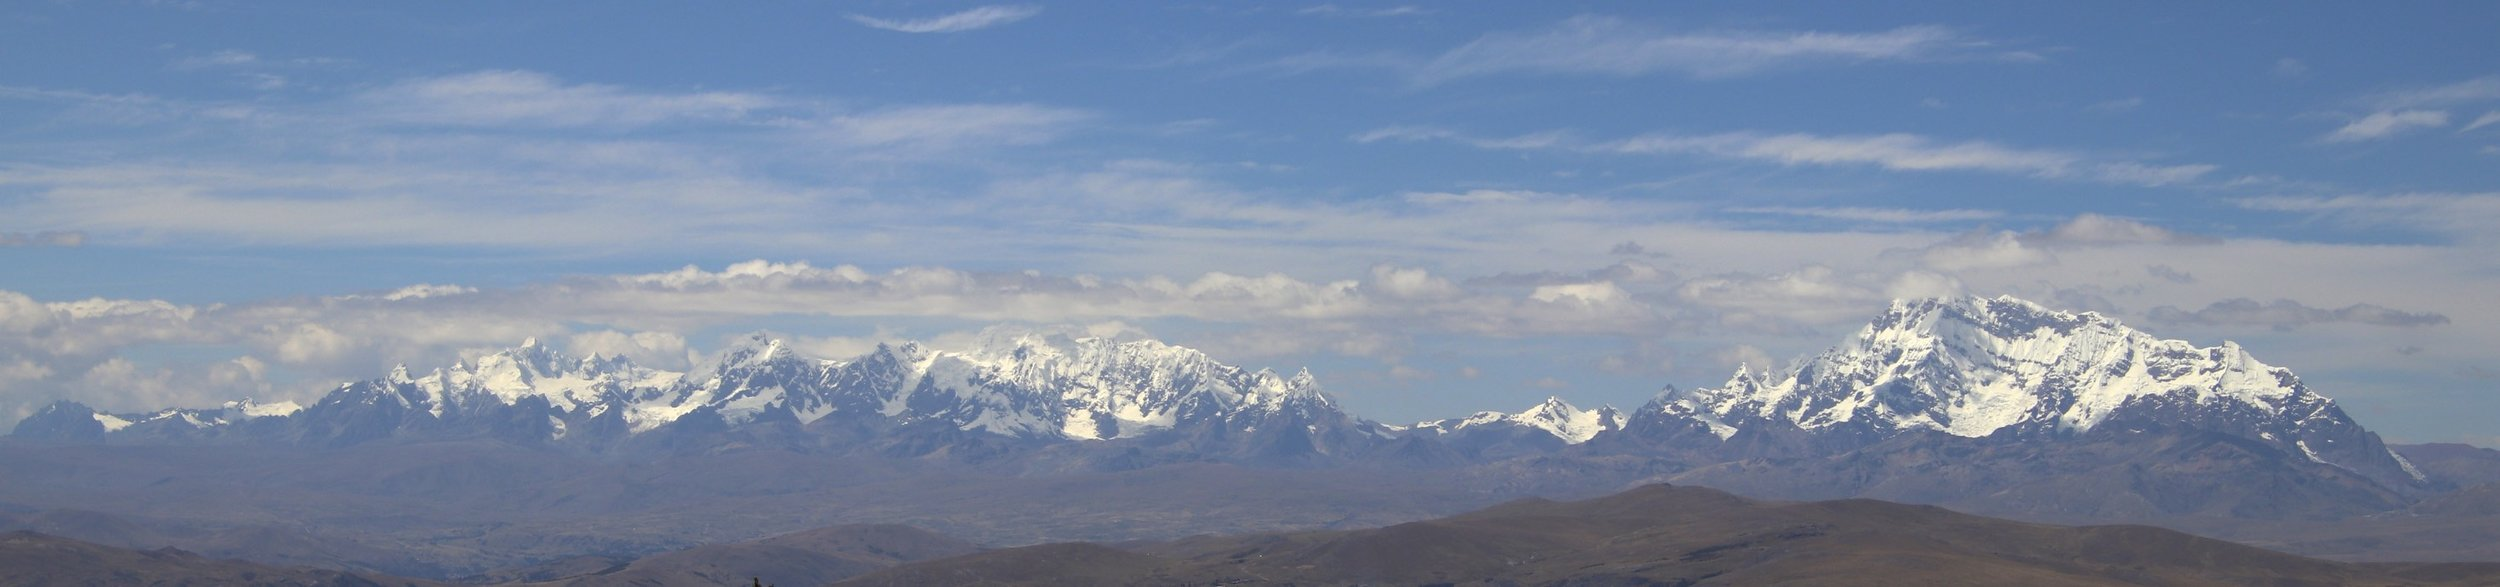 The entire Ausangate Range. The large mountain on the right is Apu Ausangate 6,372m.